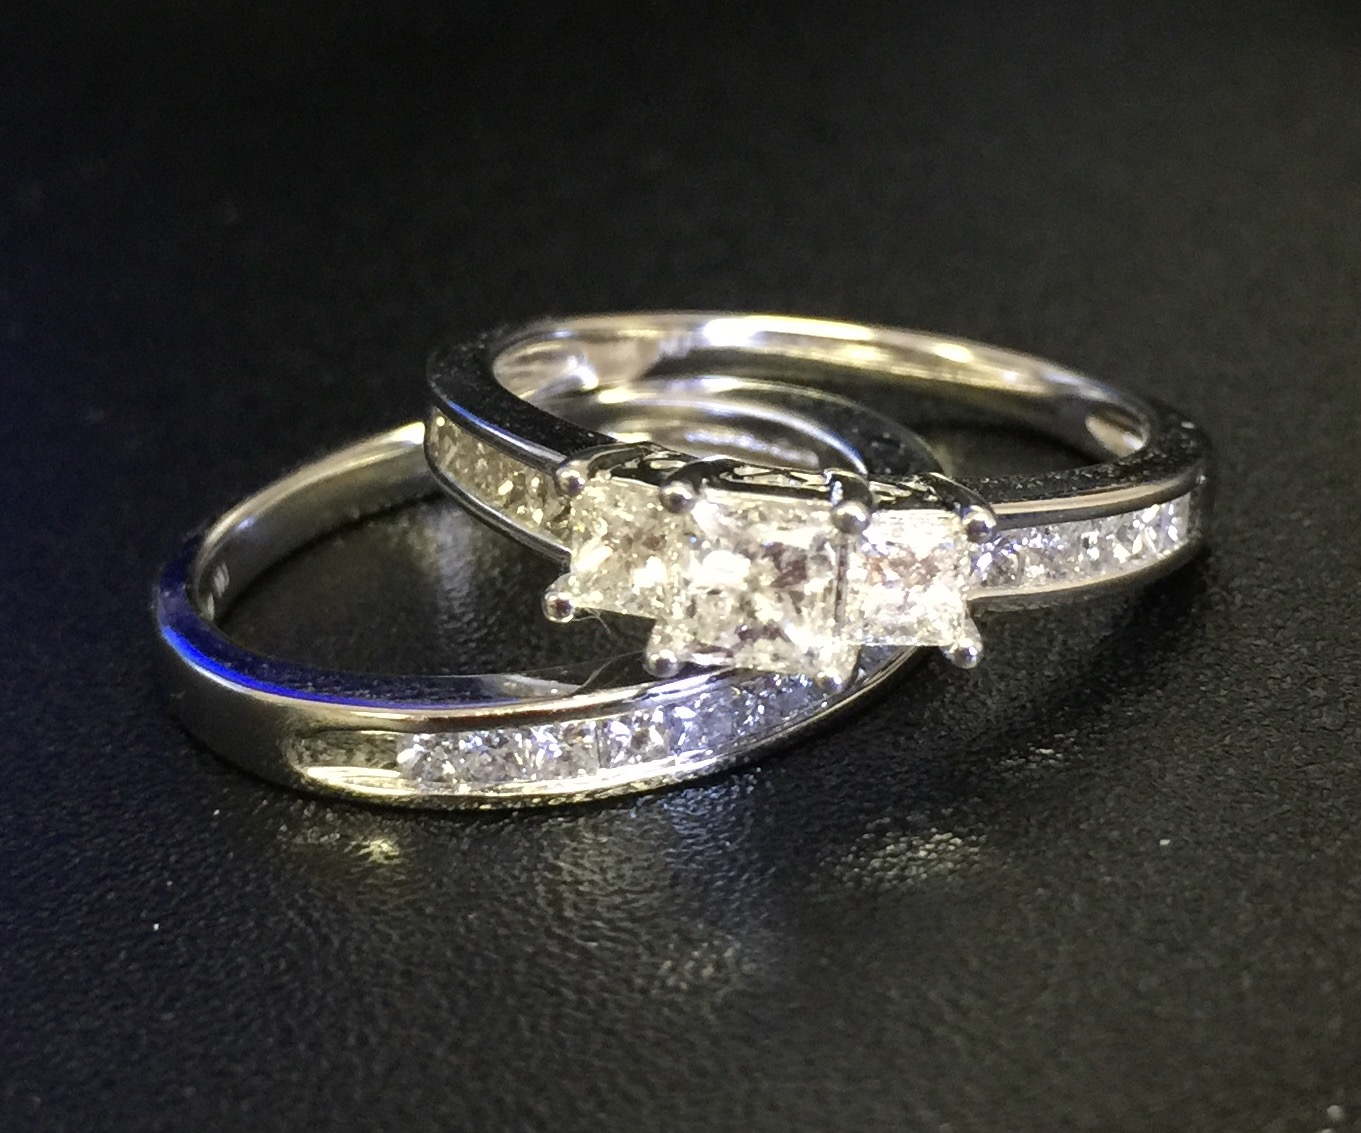 overstock ring review with pics overstock wedding rings Rings1